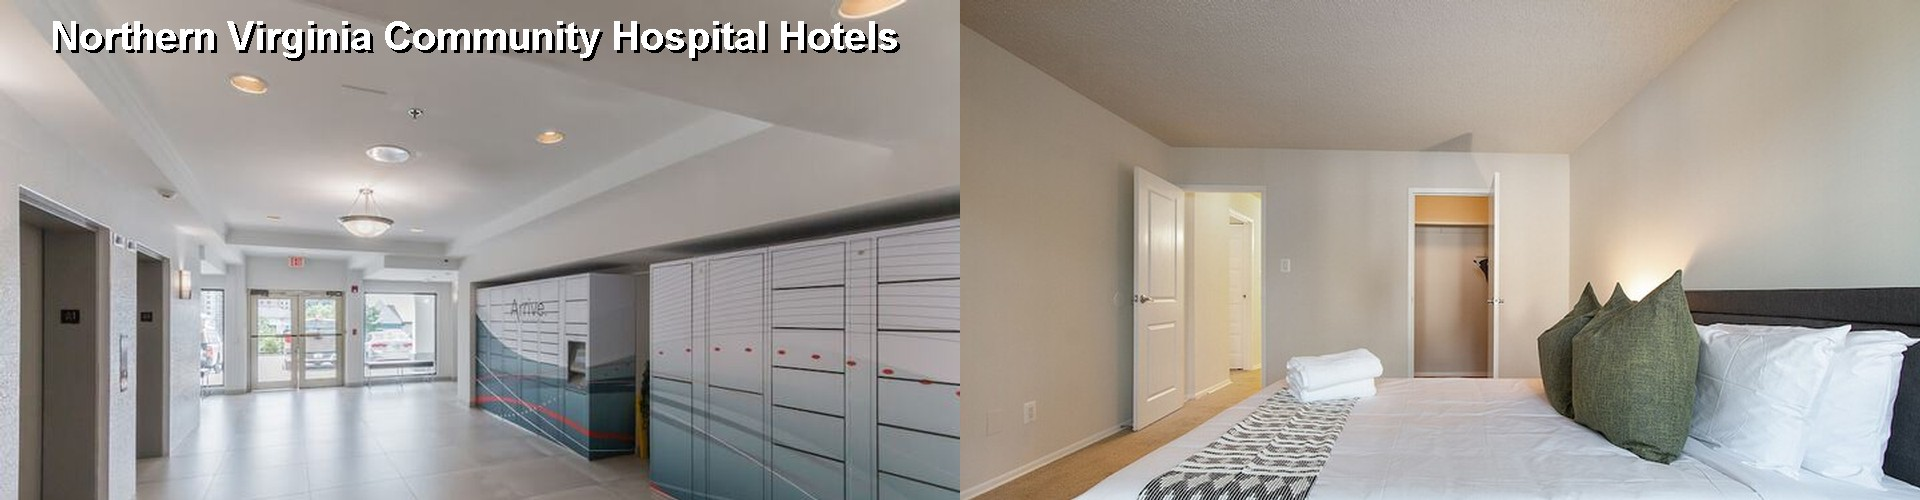 5 Best Hotels near Northern Virginia Community Hospital